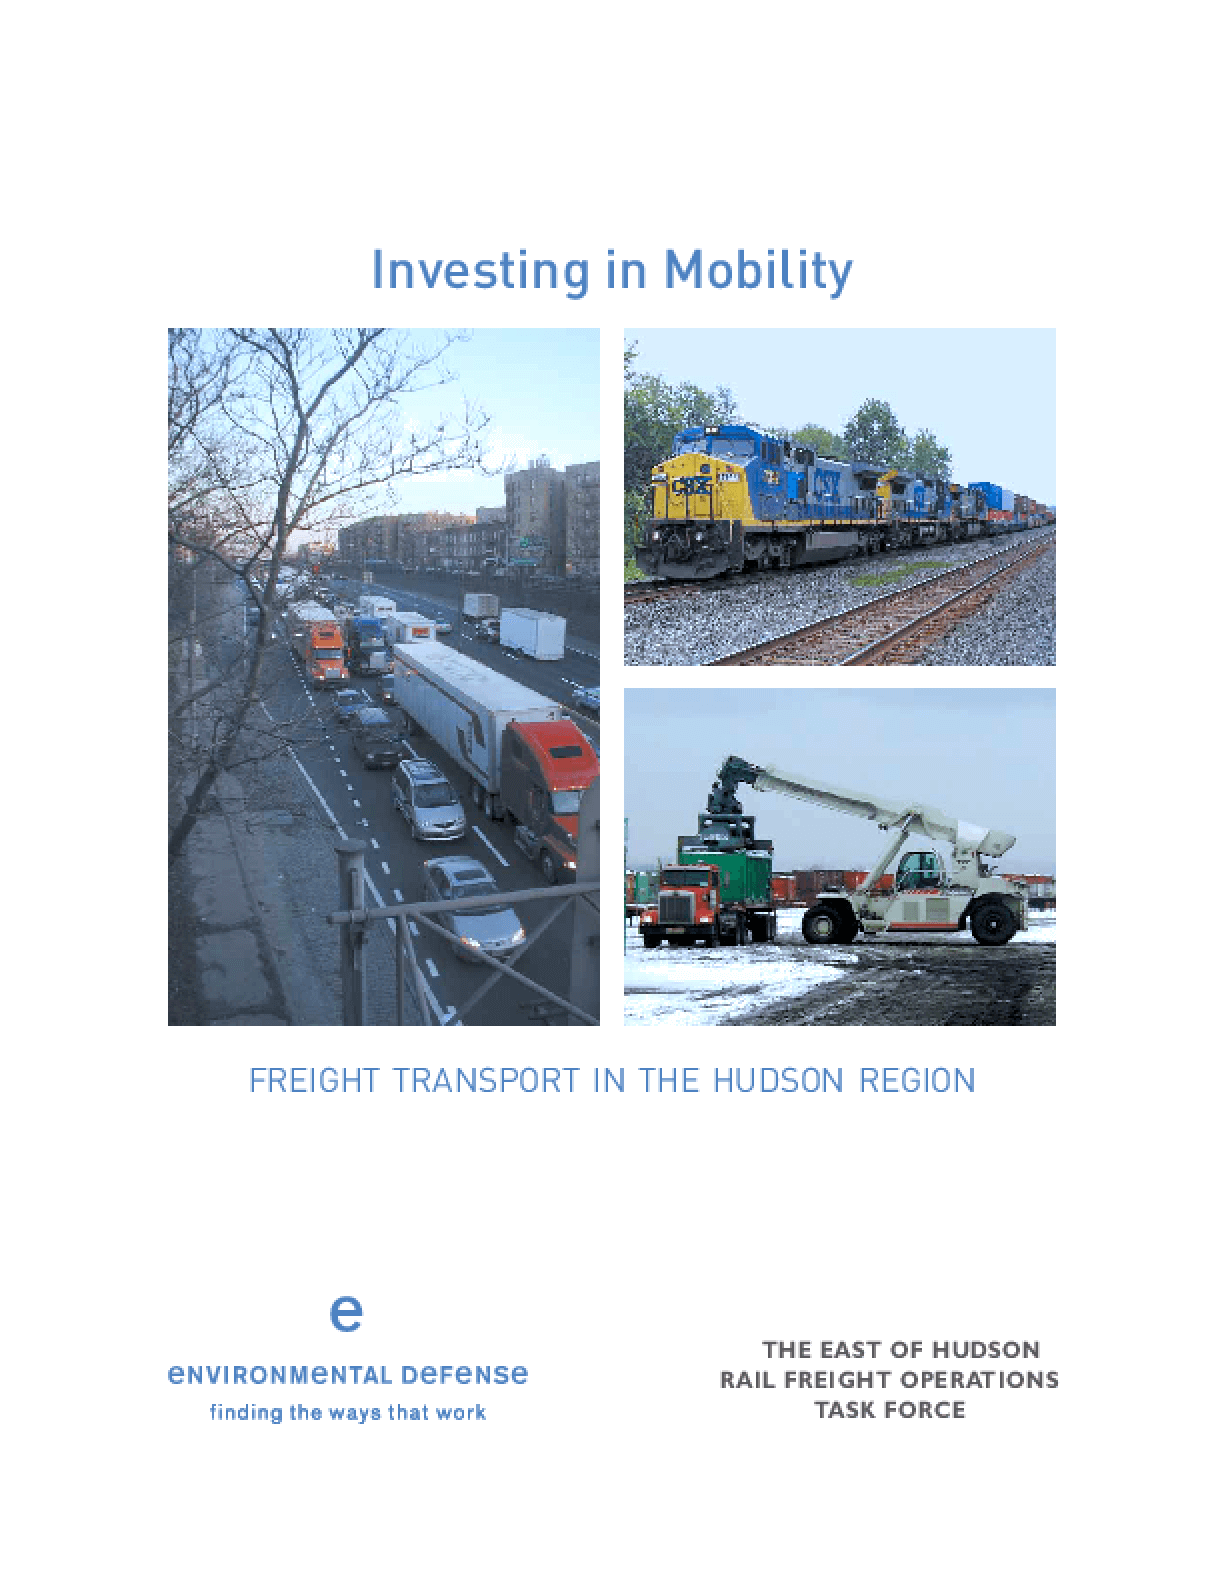 Investing in Mobility: Freight Transport in the Hudson Region